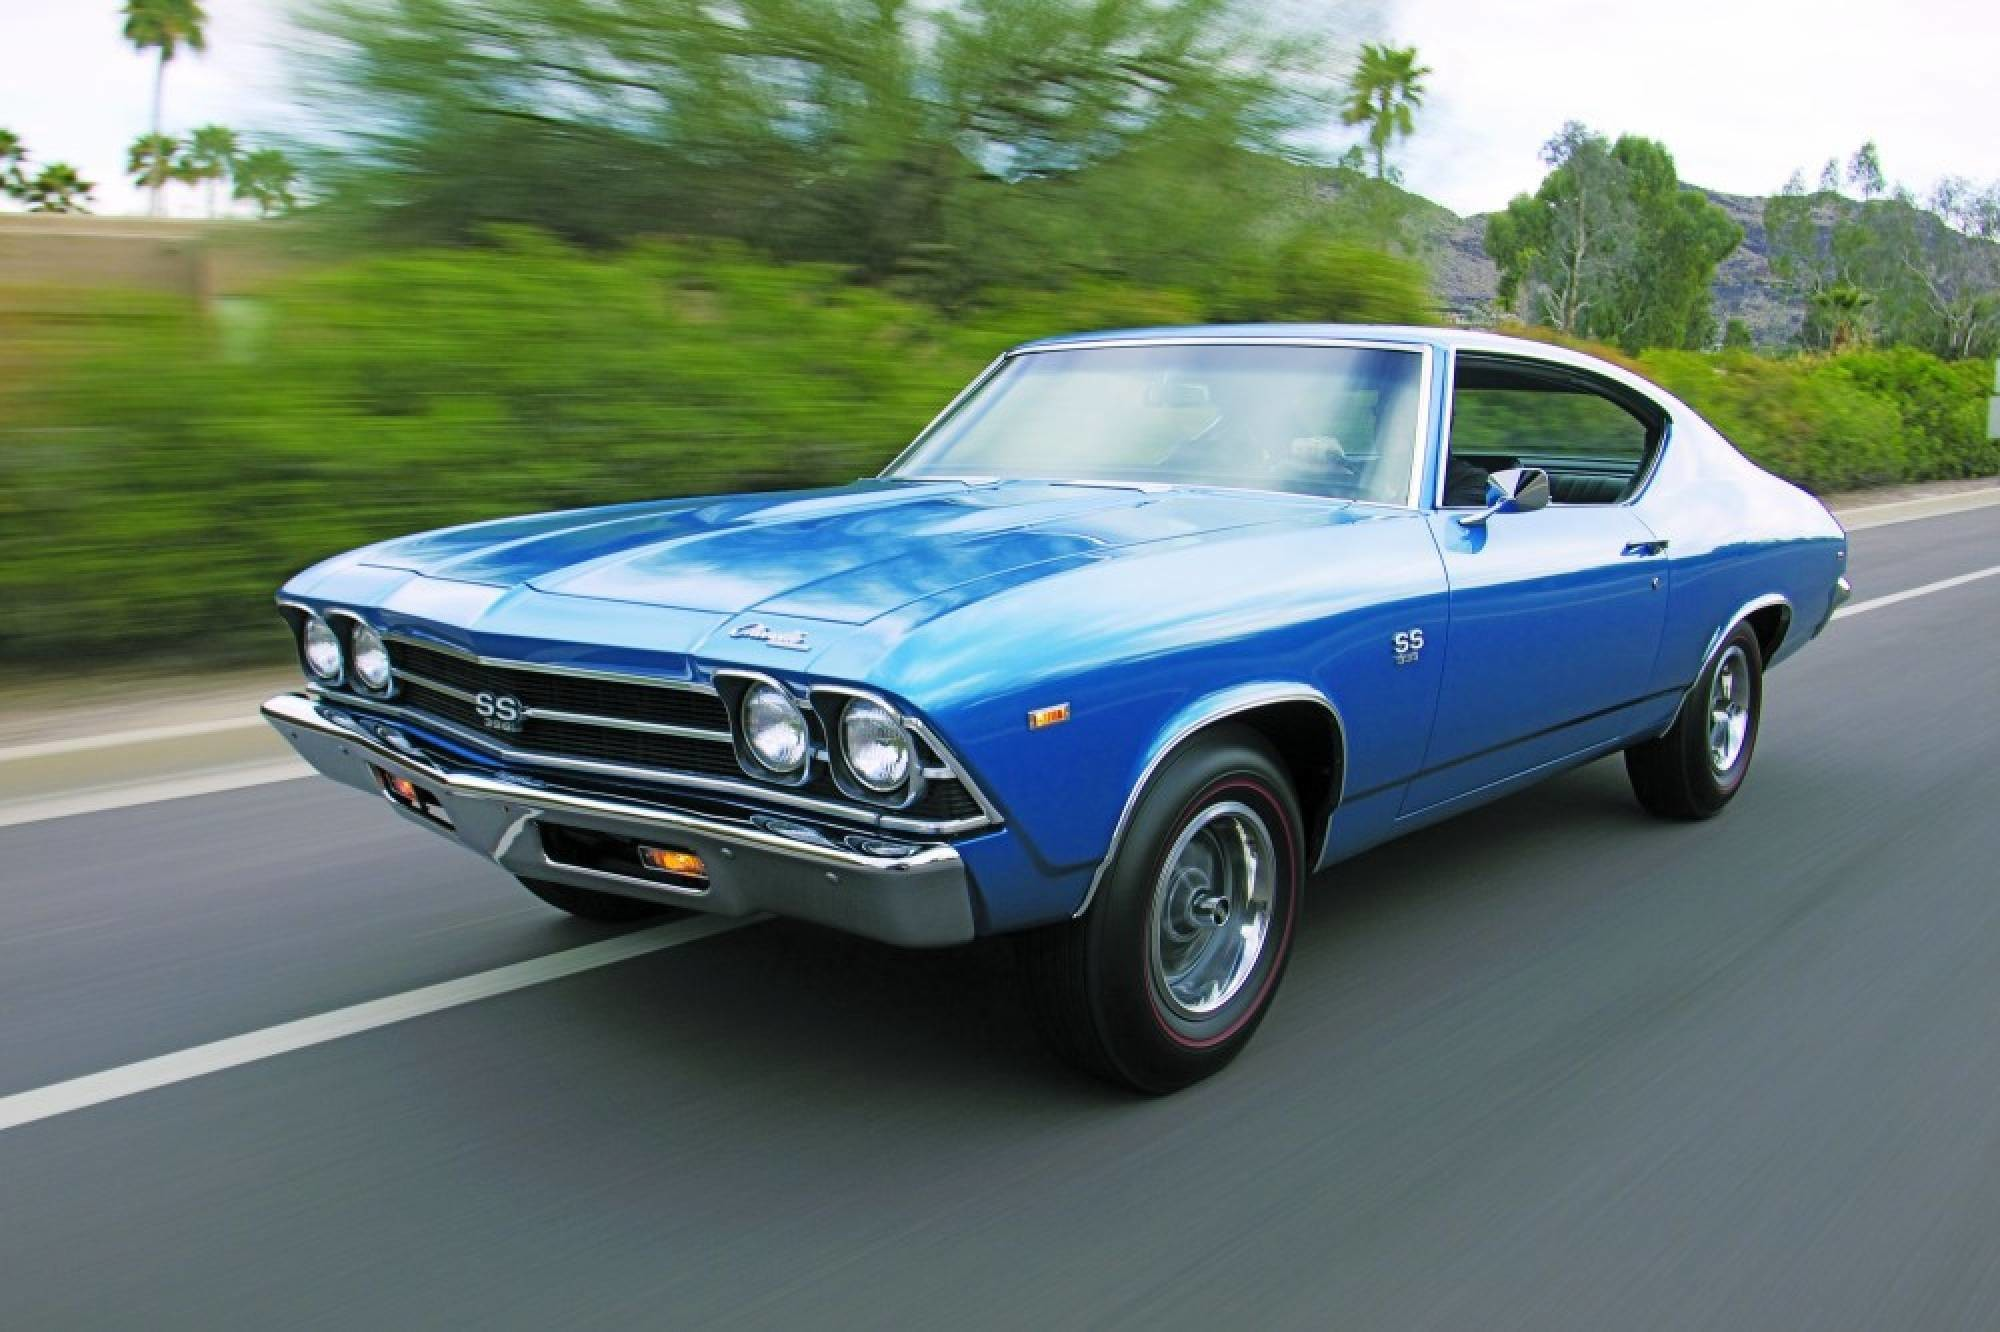 1969 Chevrolet Chevelle Gateway Classic Cars 952